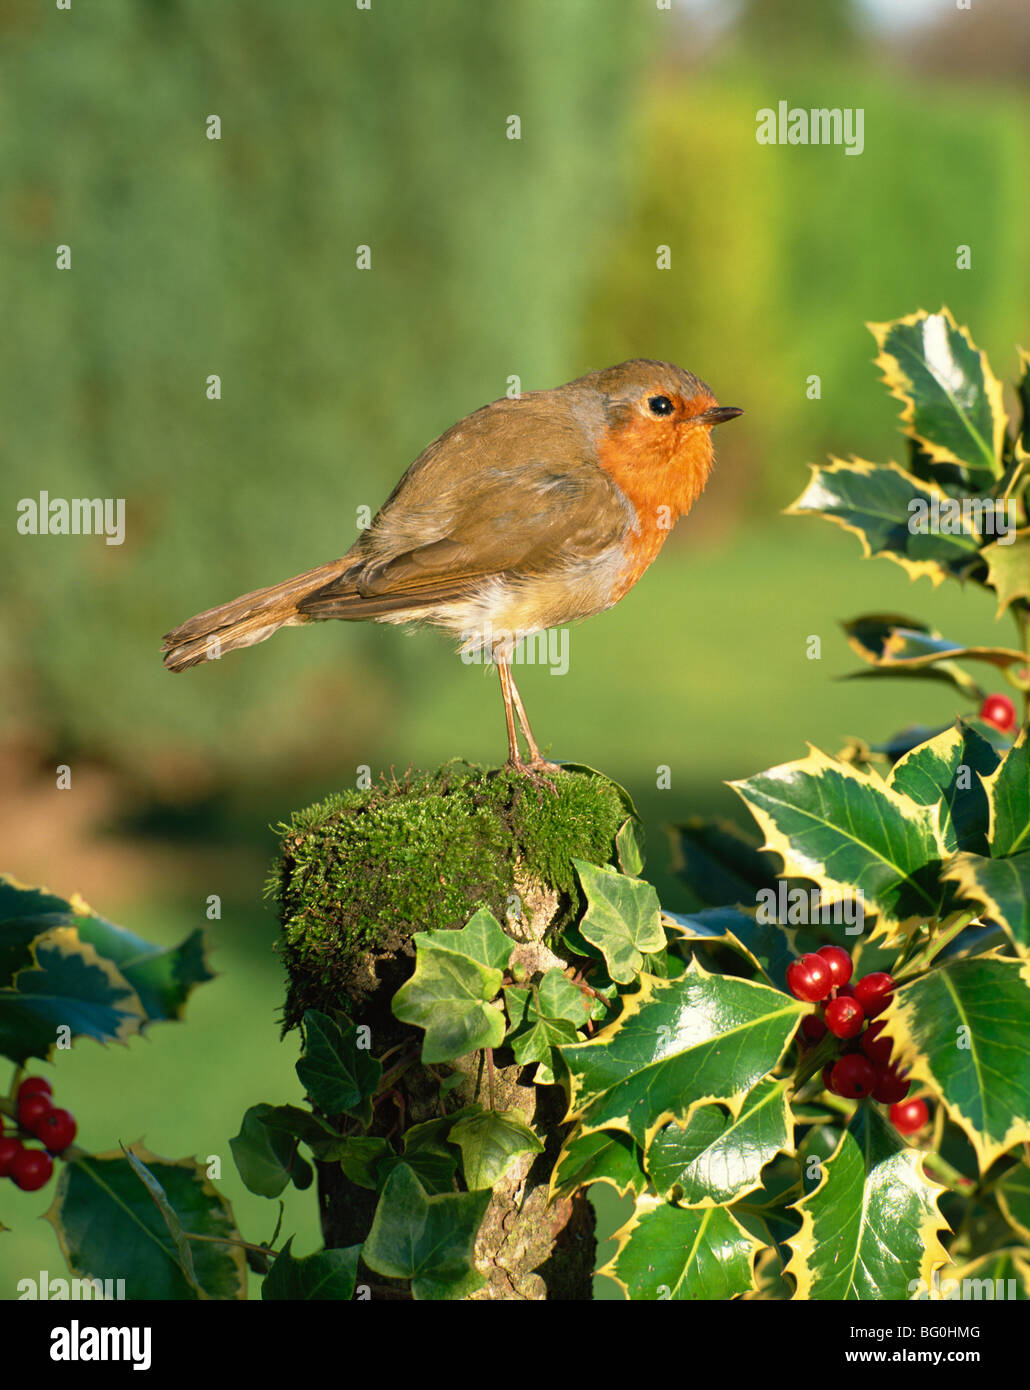 Robin (Erithacus rubecula) perching on post near holly - Stock Image